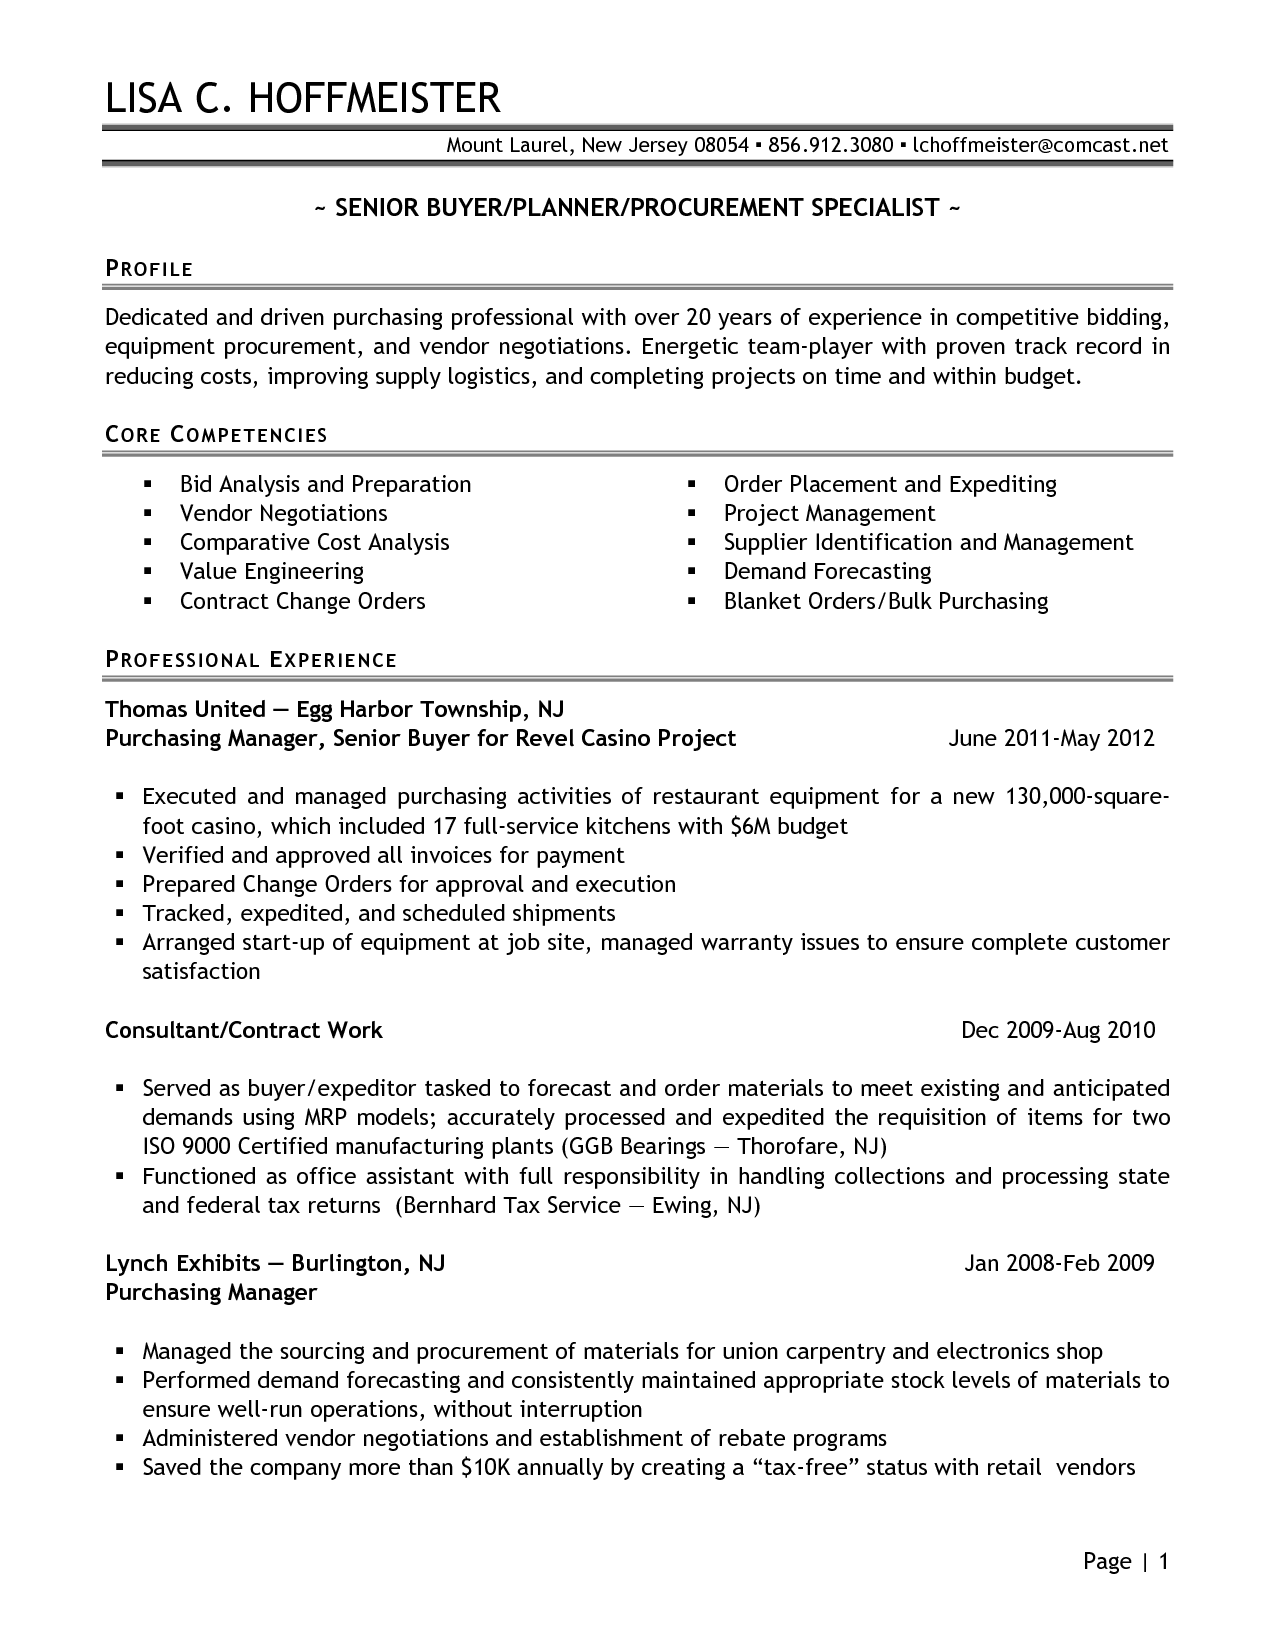 Senior Logistic Management Resume Senior Buyer Purchasing Manager